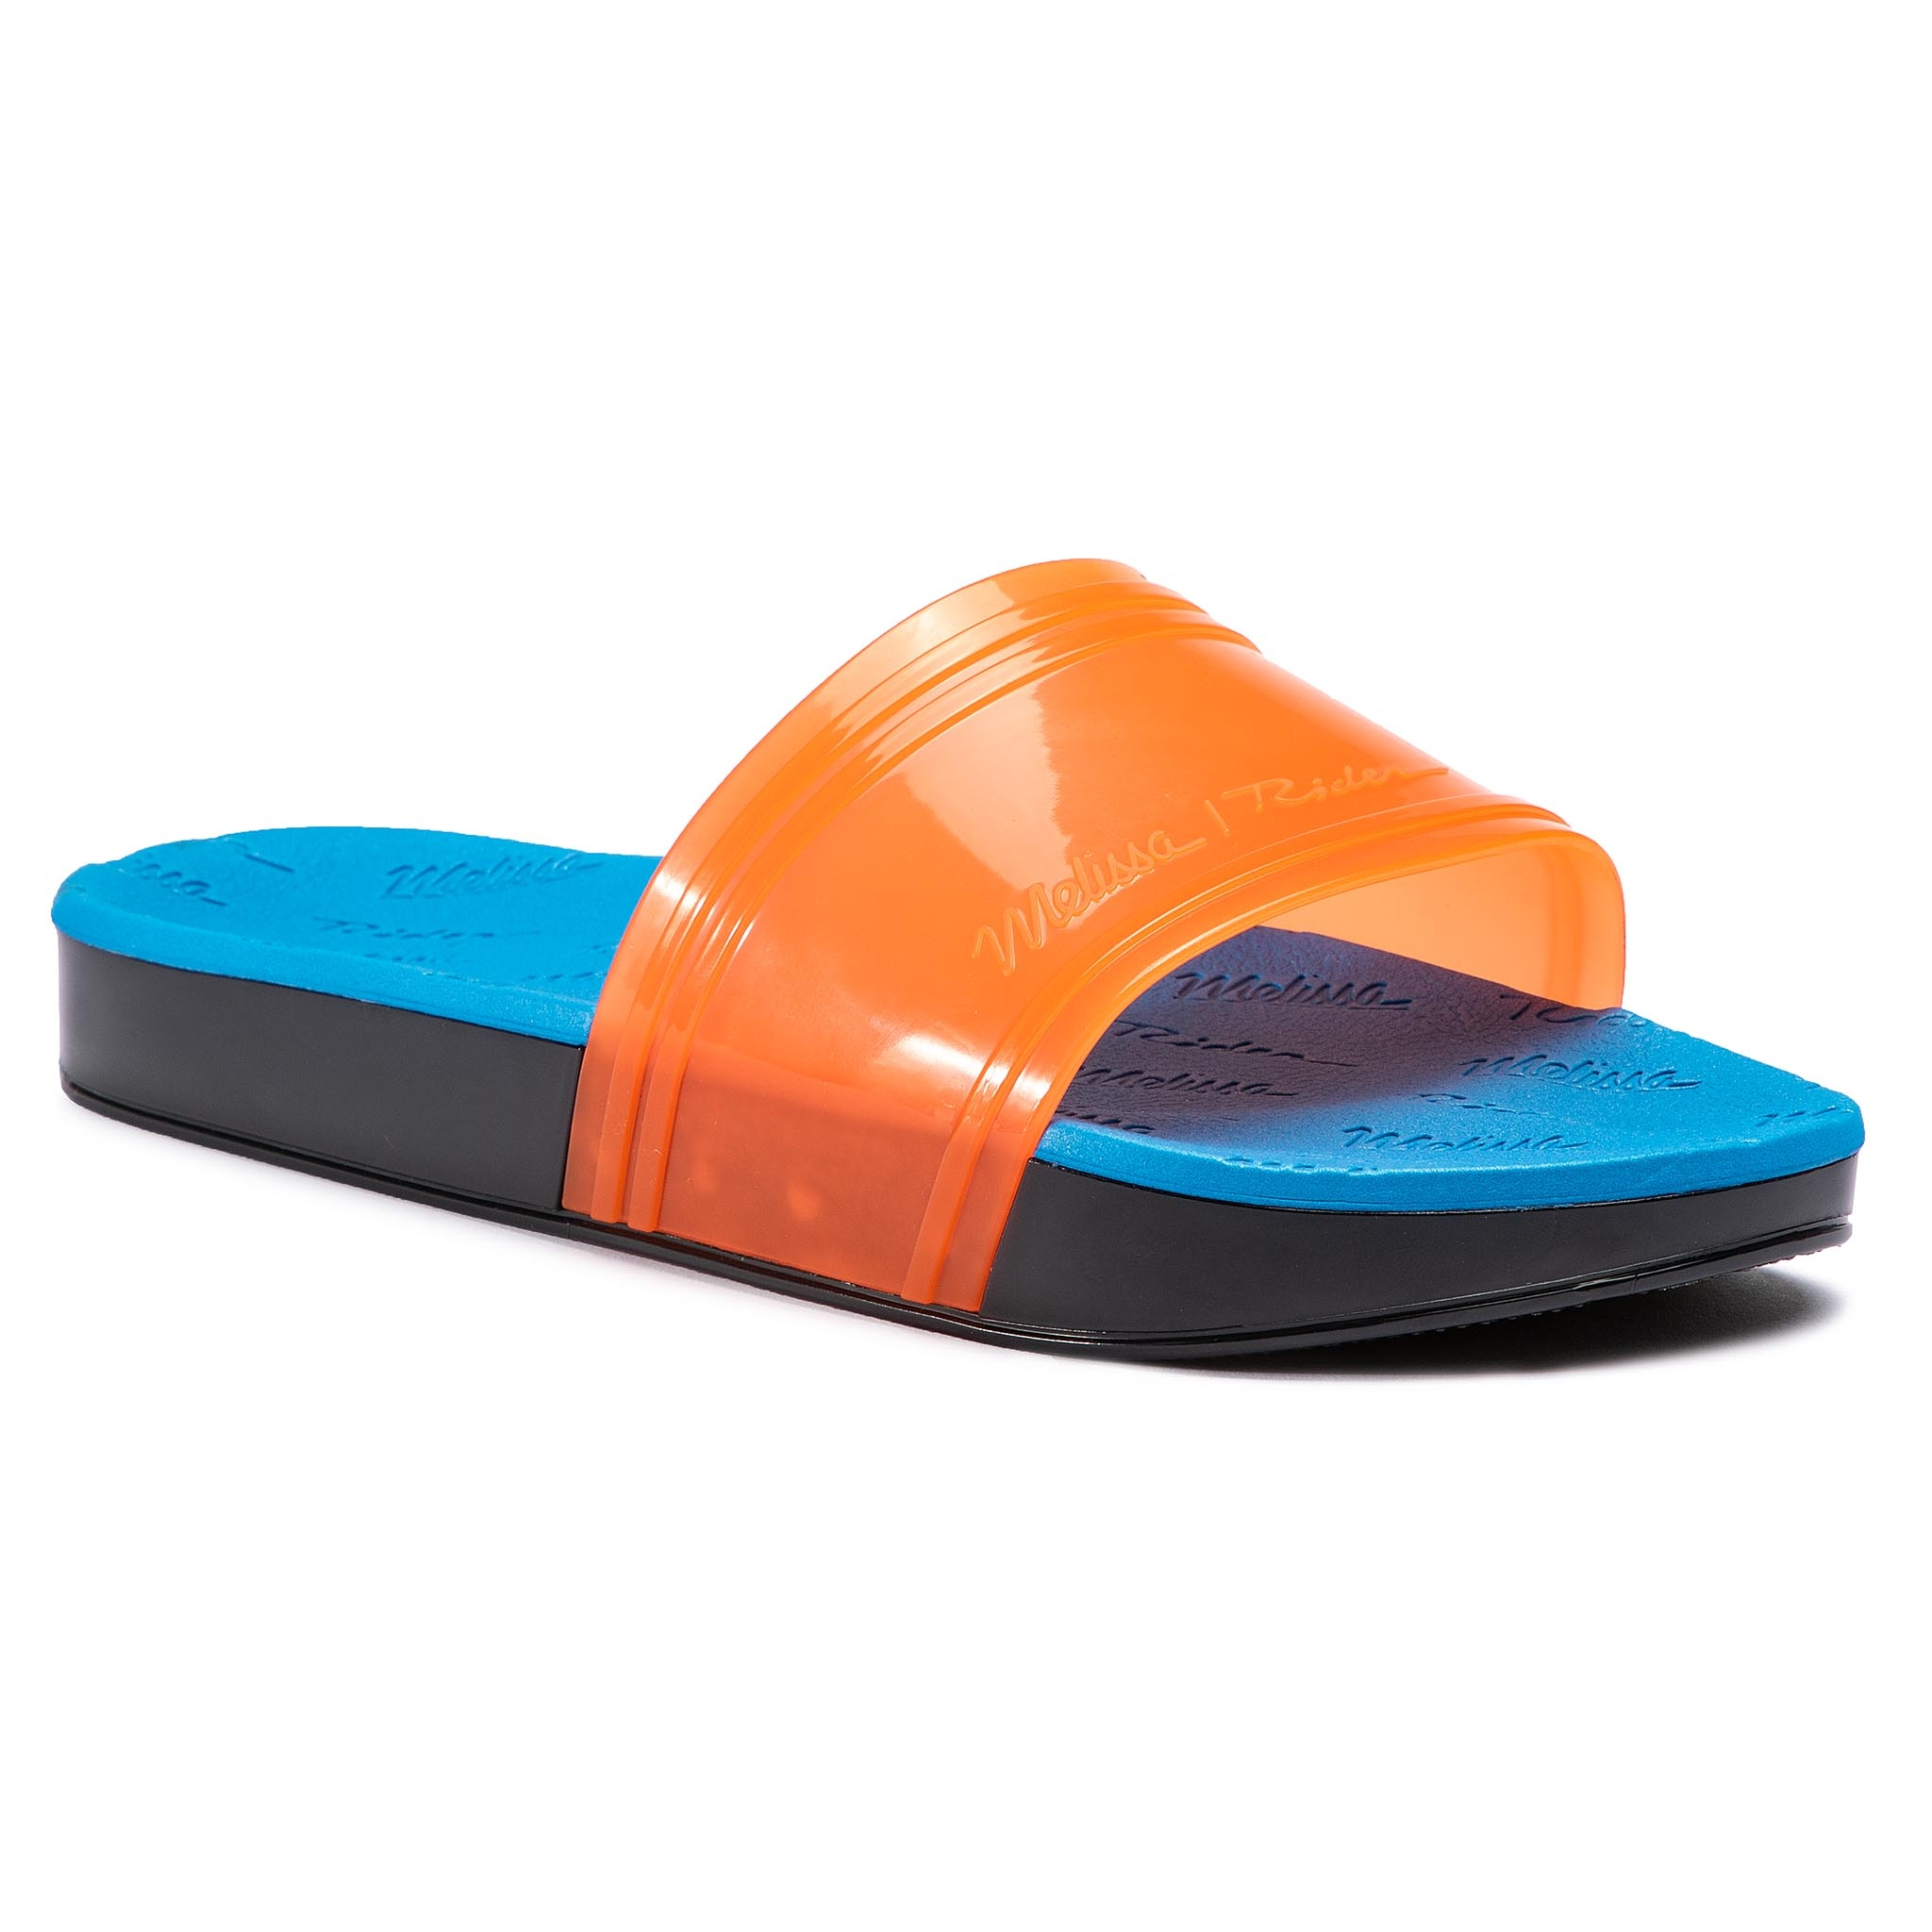 Șlapi MELISSA - Slide + Rider Ad 32434 Orange/Blue/Green 53430